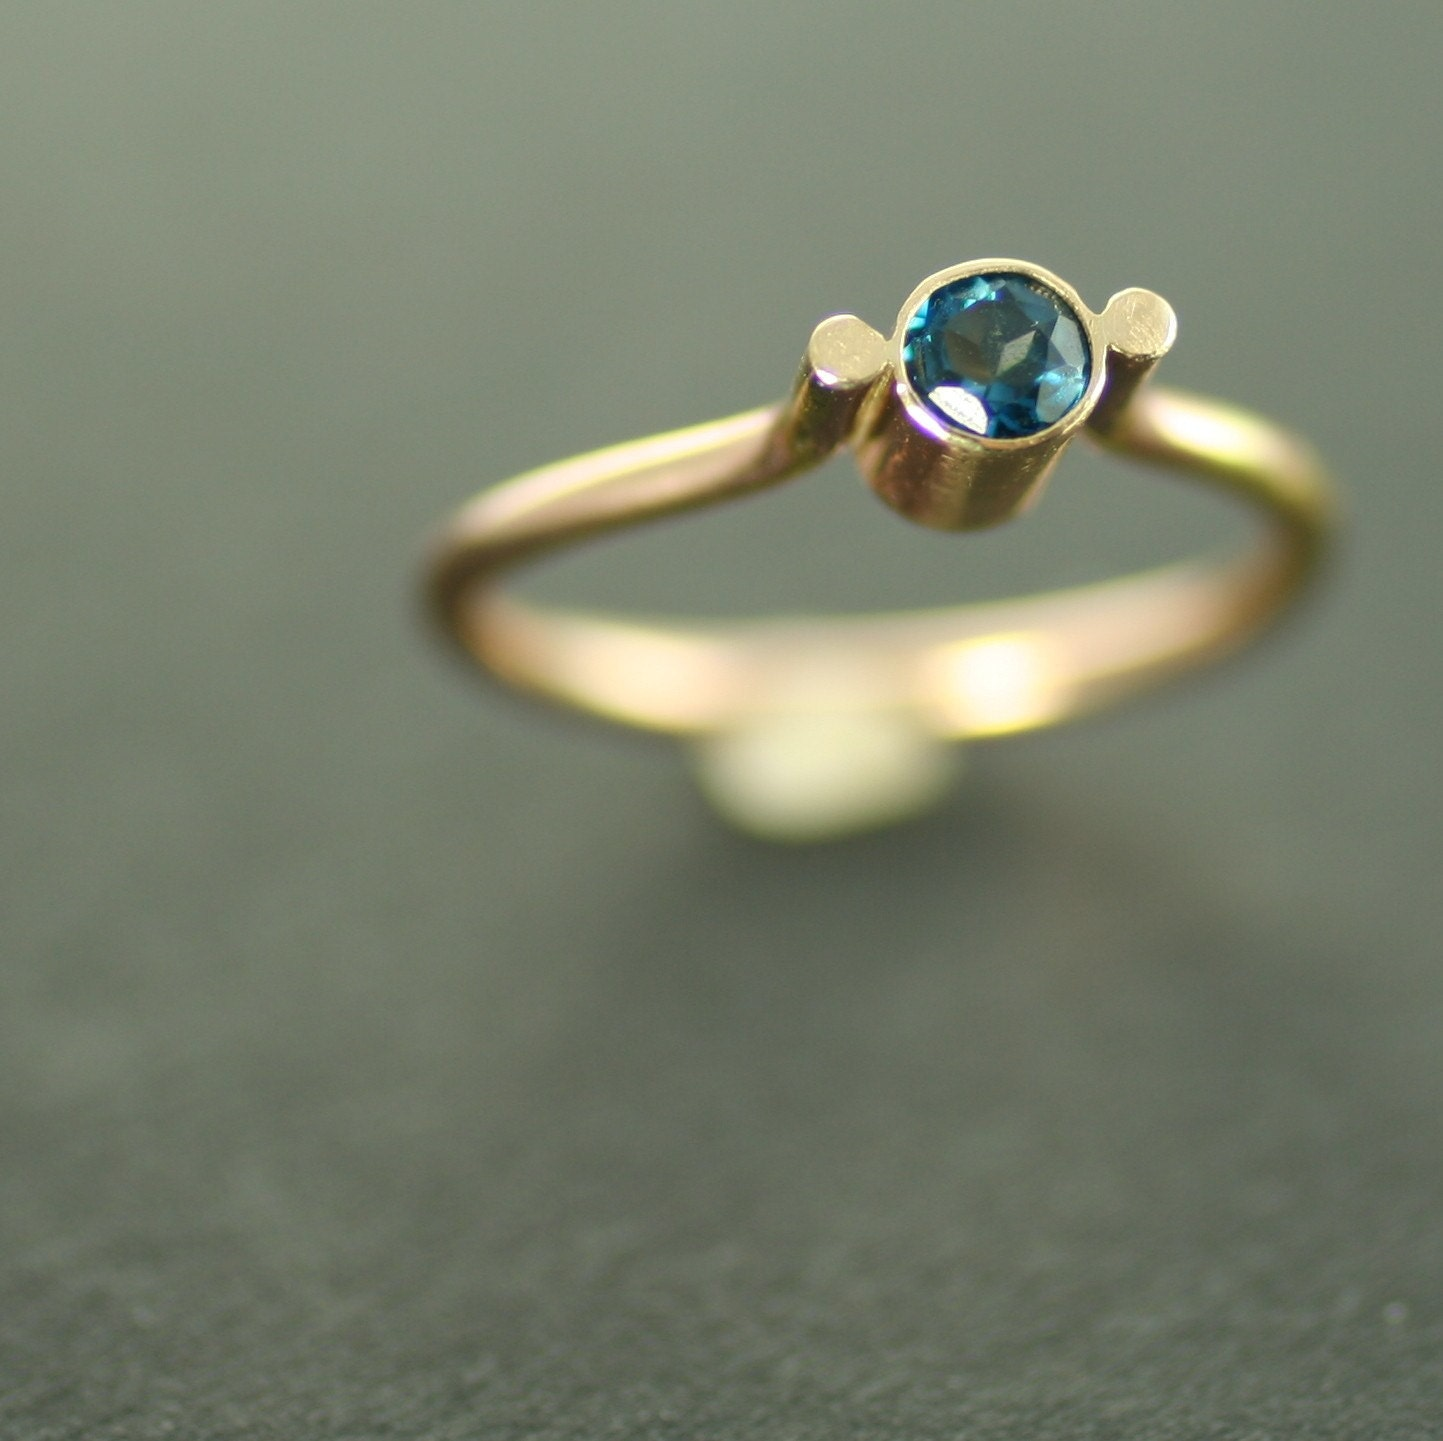 Gold Ring with London Blue Topaz in a Modern Setting